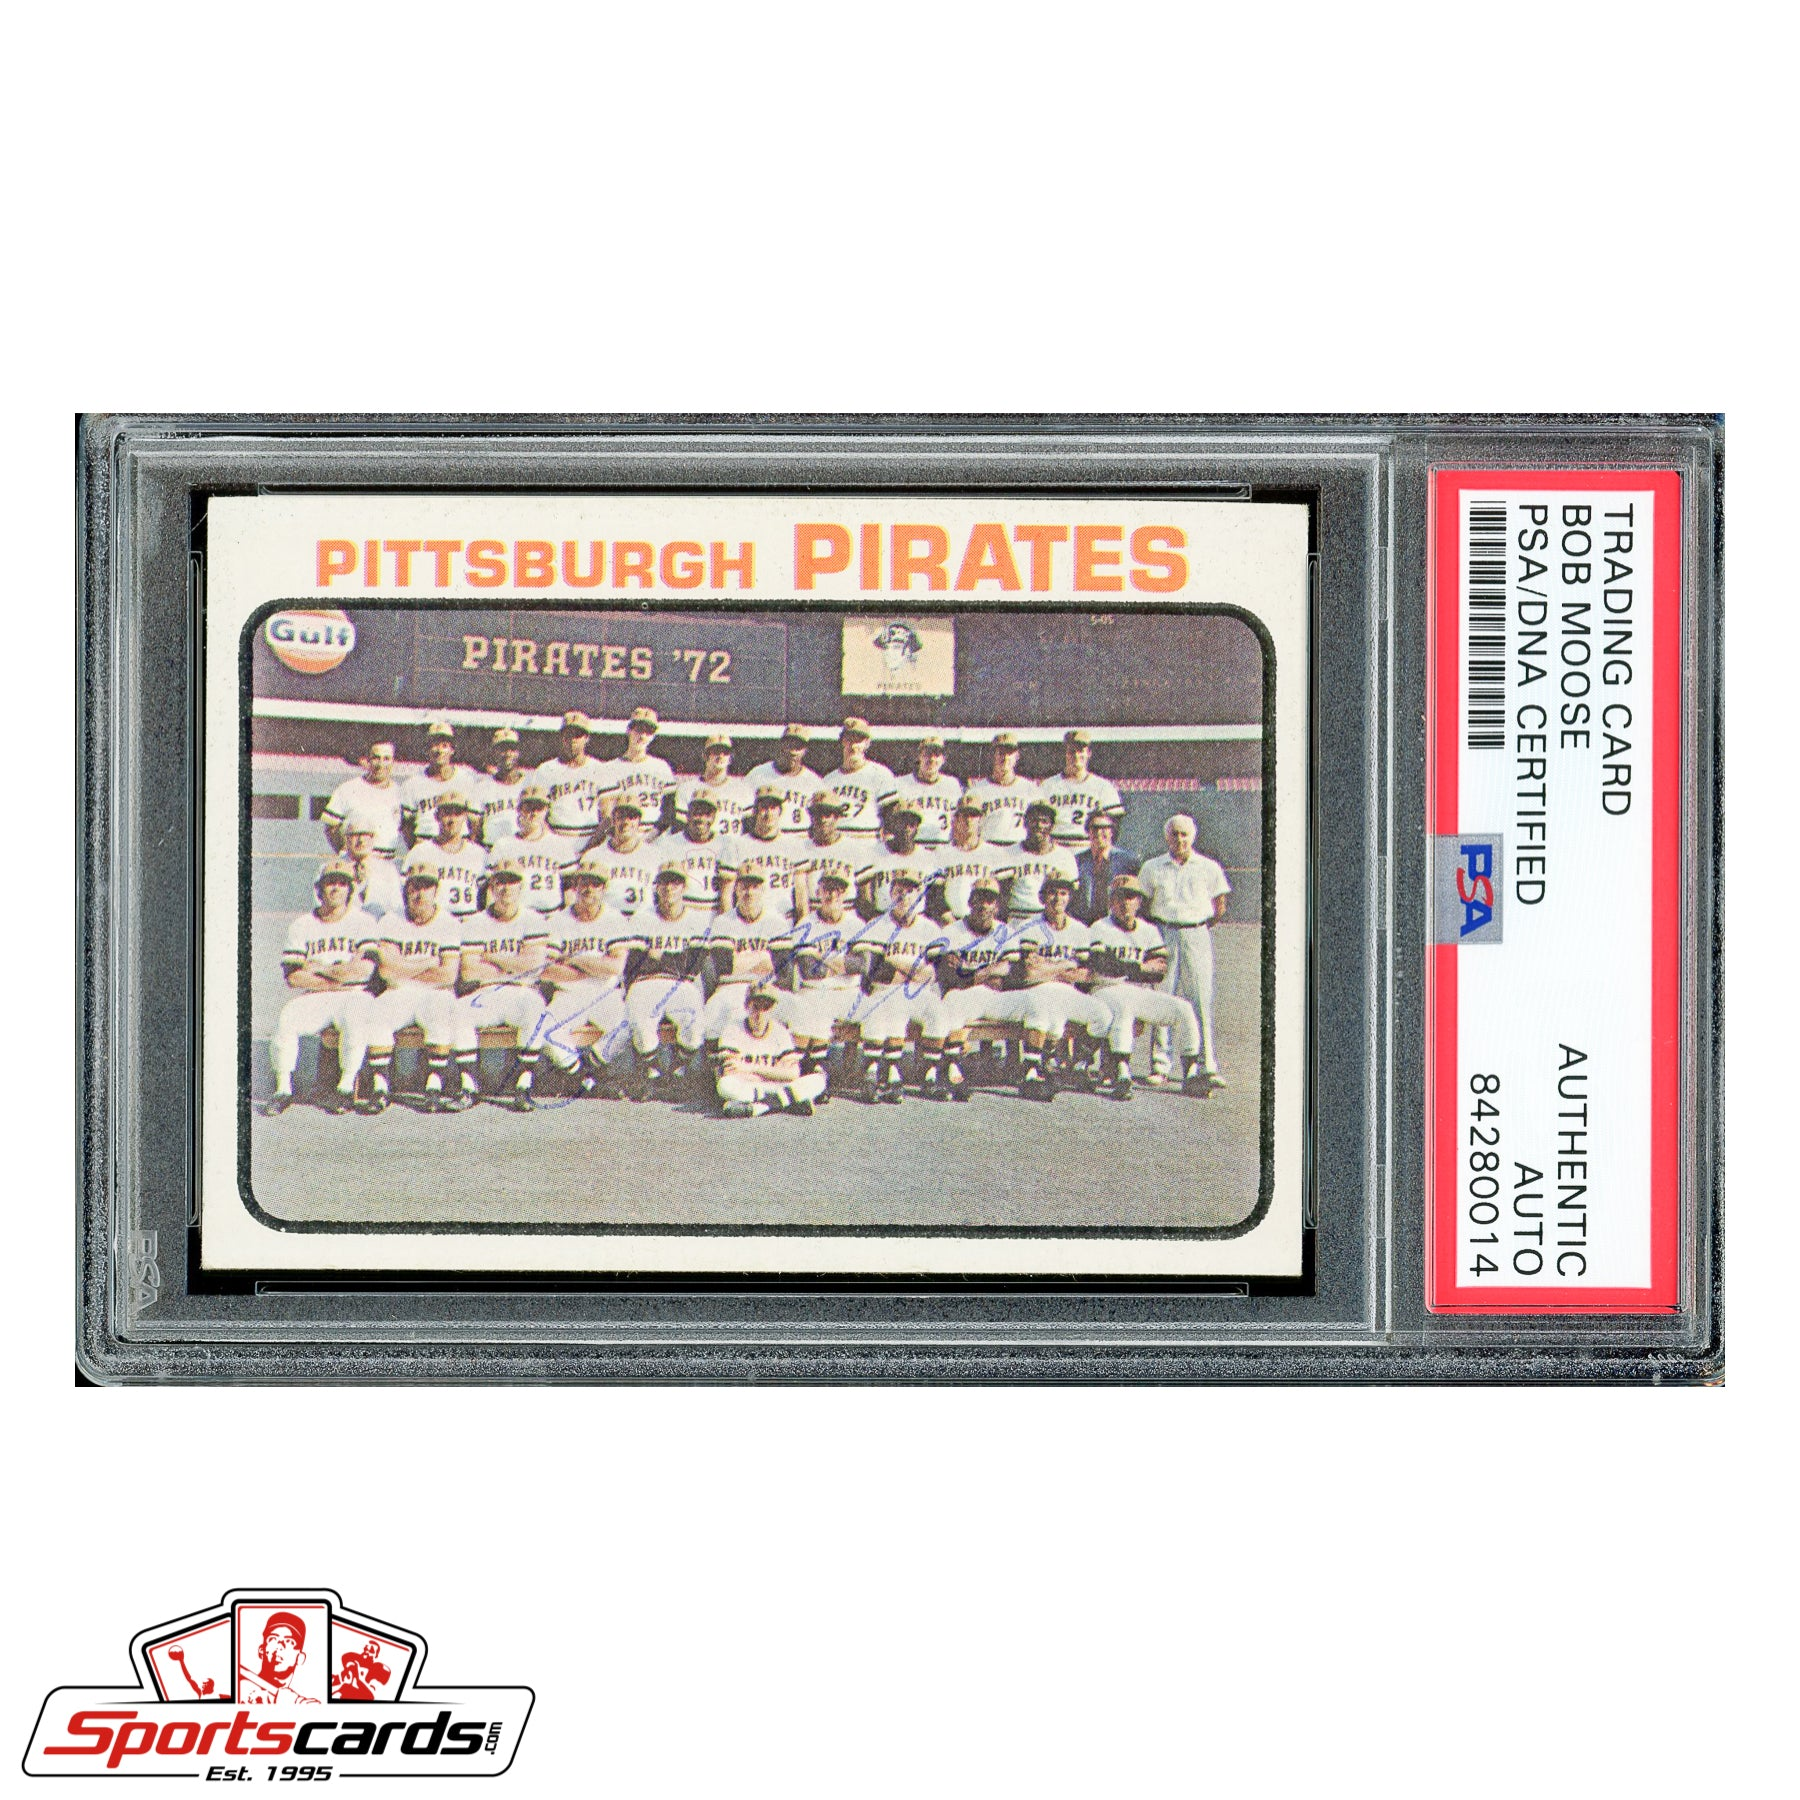 Bob Moose (d.1976) Signed Auto 1973 Topps Pittsburgh Pirates Team Card #26 PSA/DNA - Rare!